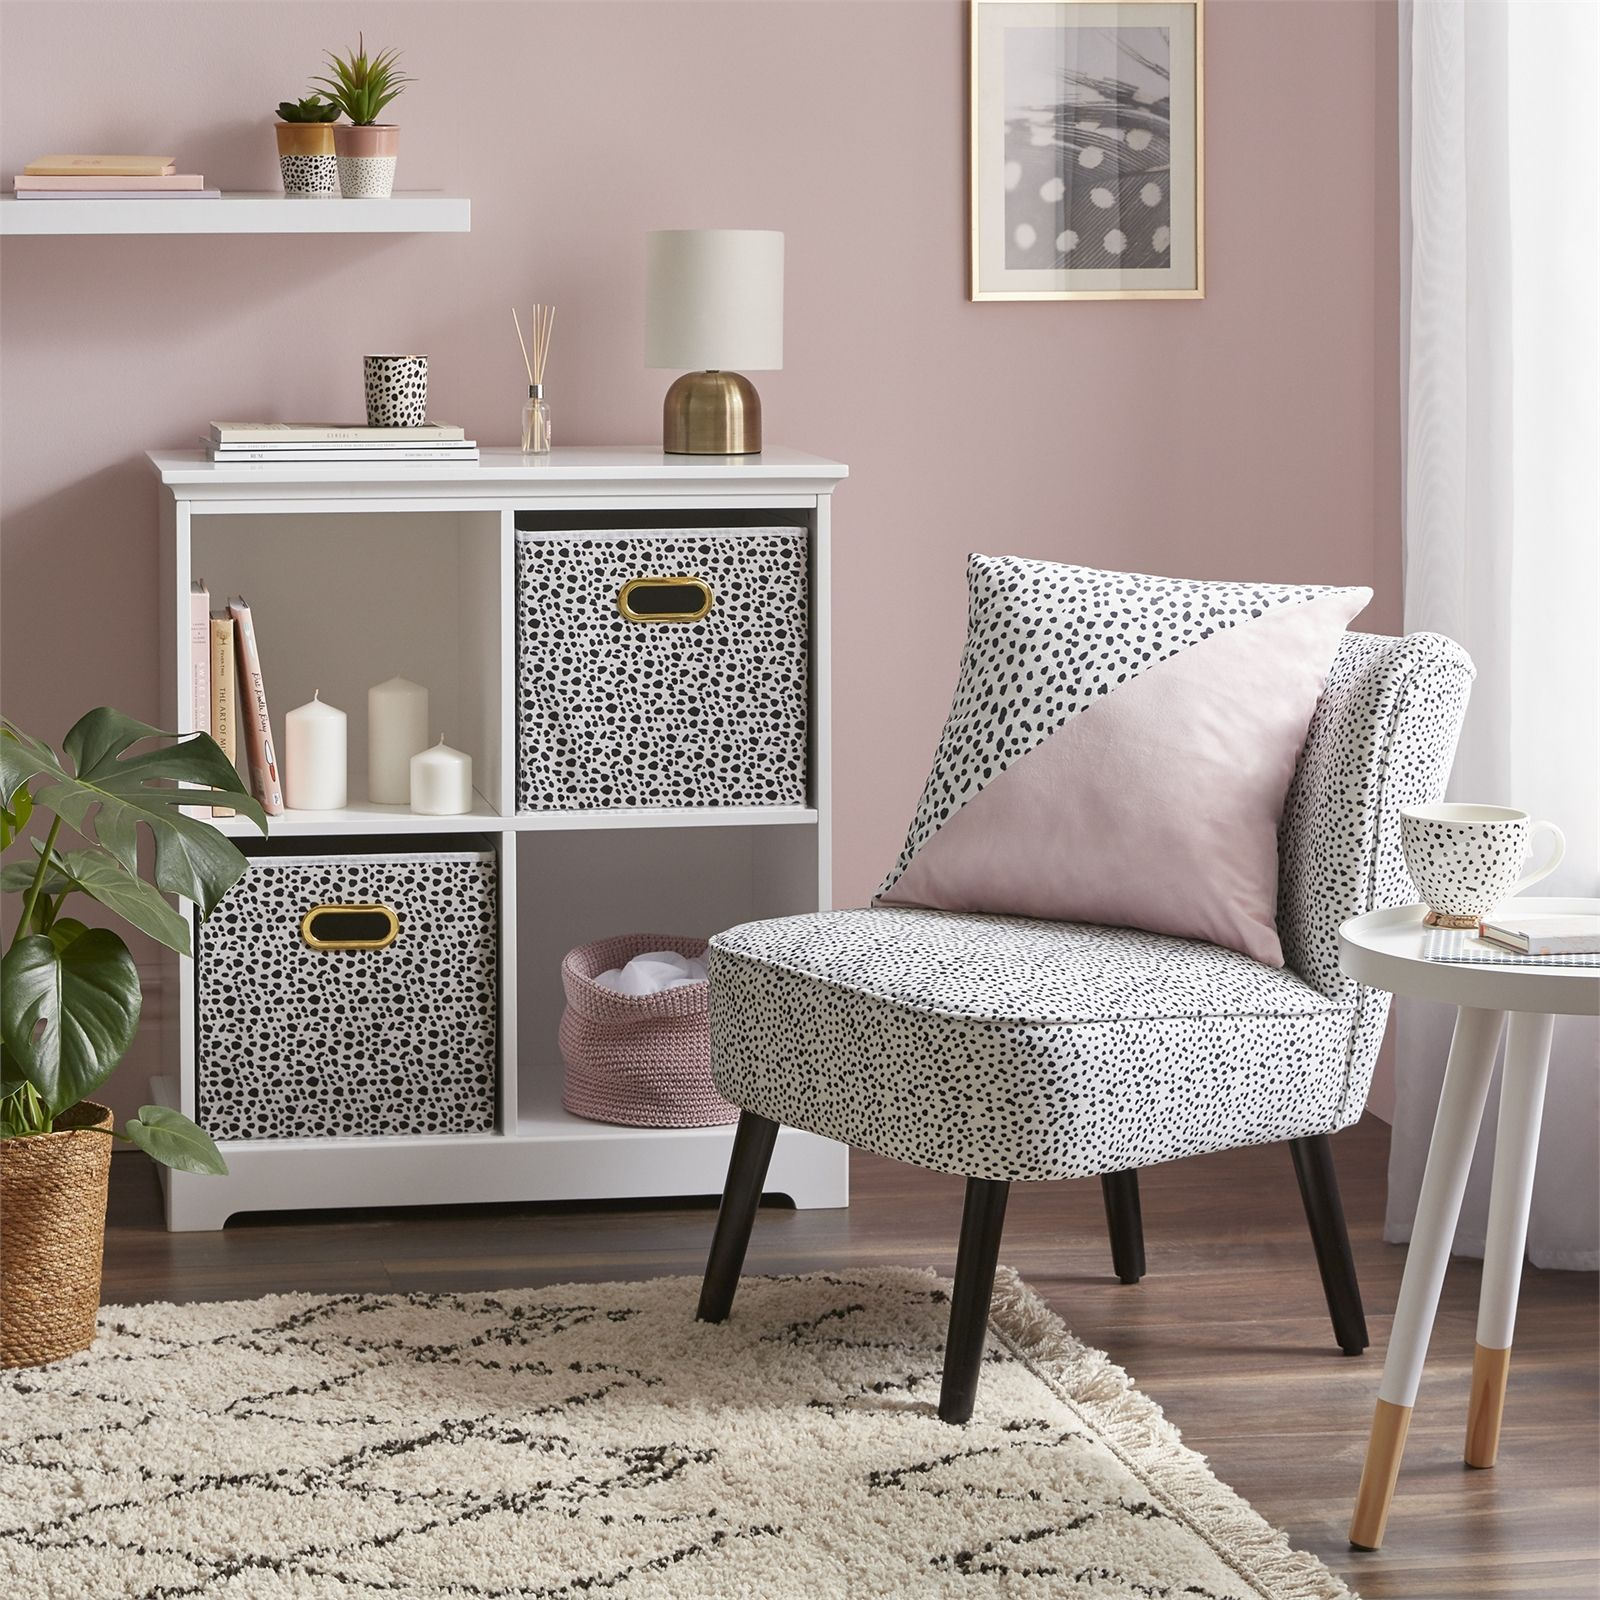 Homebase Occasional Chair In Dalmatian Print Is On Sale For £12